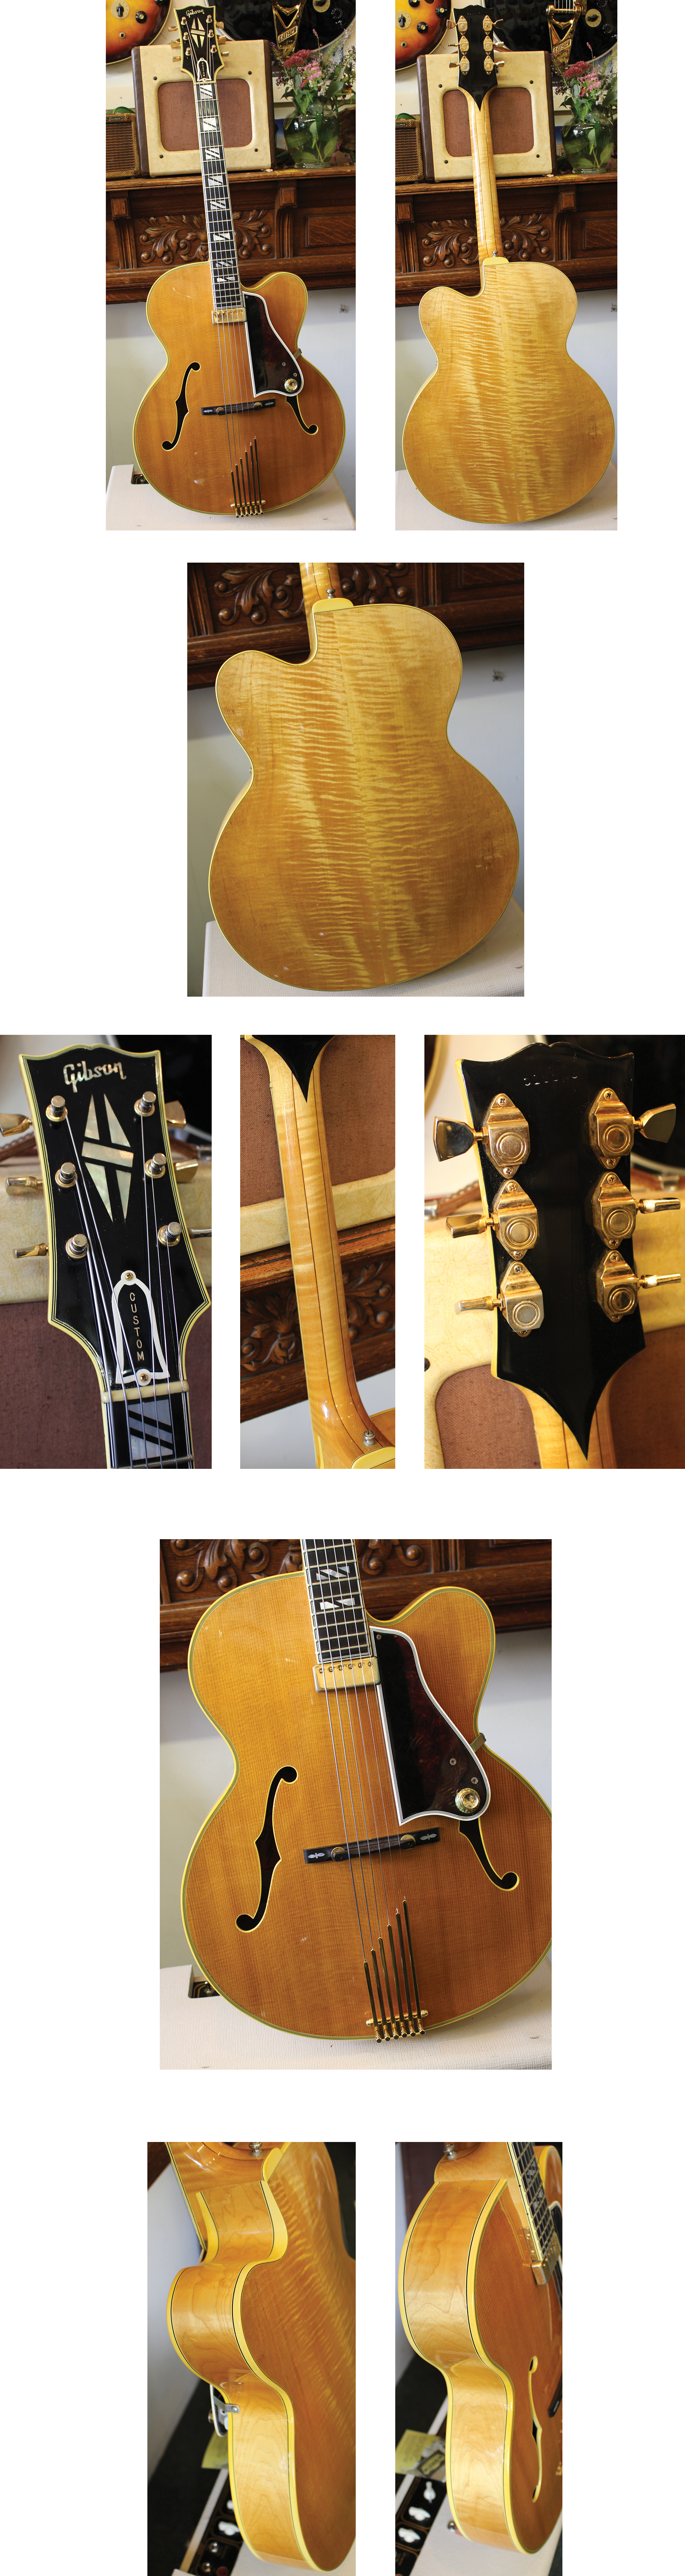 Lark Street Music Vintage Guitars Teaneck Nj 1965 Gibson Es345 Wiring Repair Chicago Fret Works Guitar 6950 Johnny Smith C Or 68 Blonde Single Floating Pickup Curly Maple Back And Figured Sides Exc Ohsc